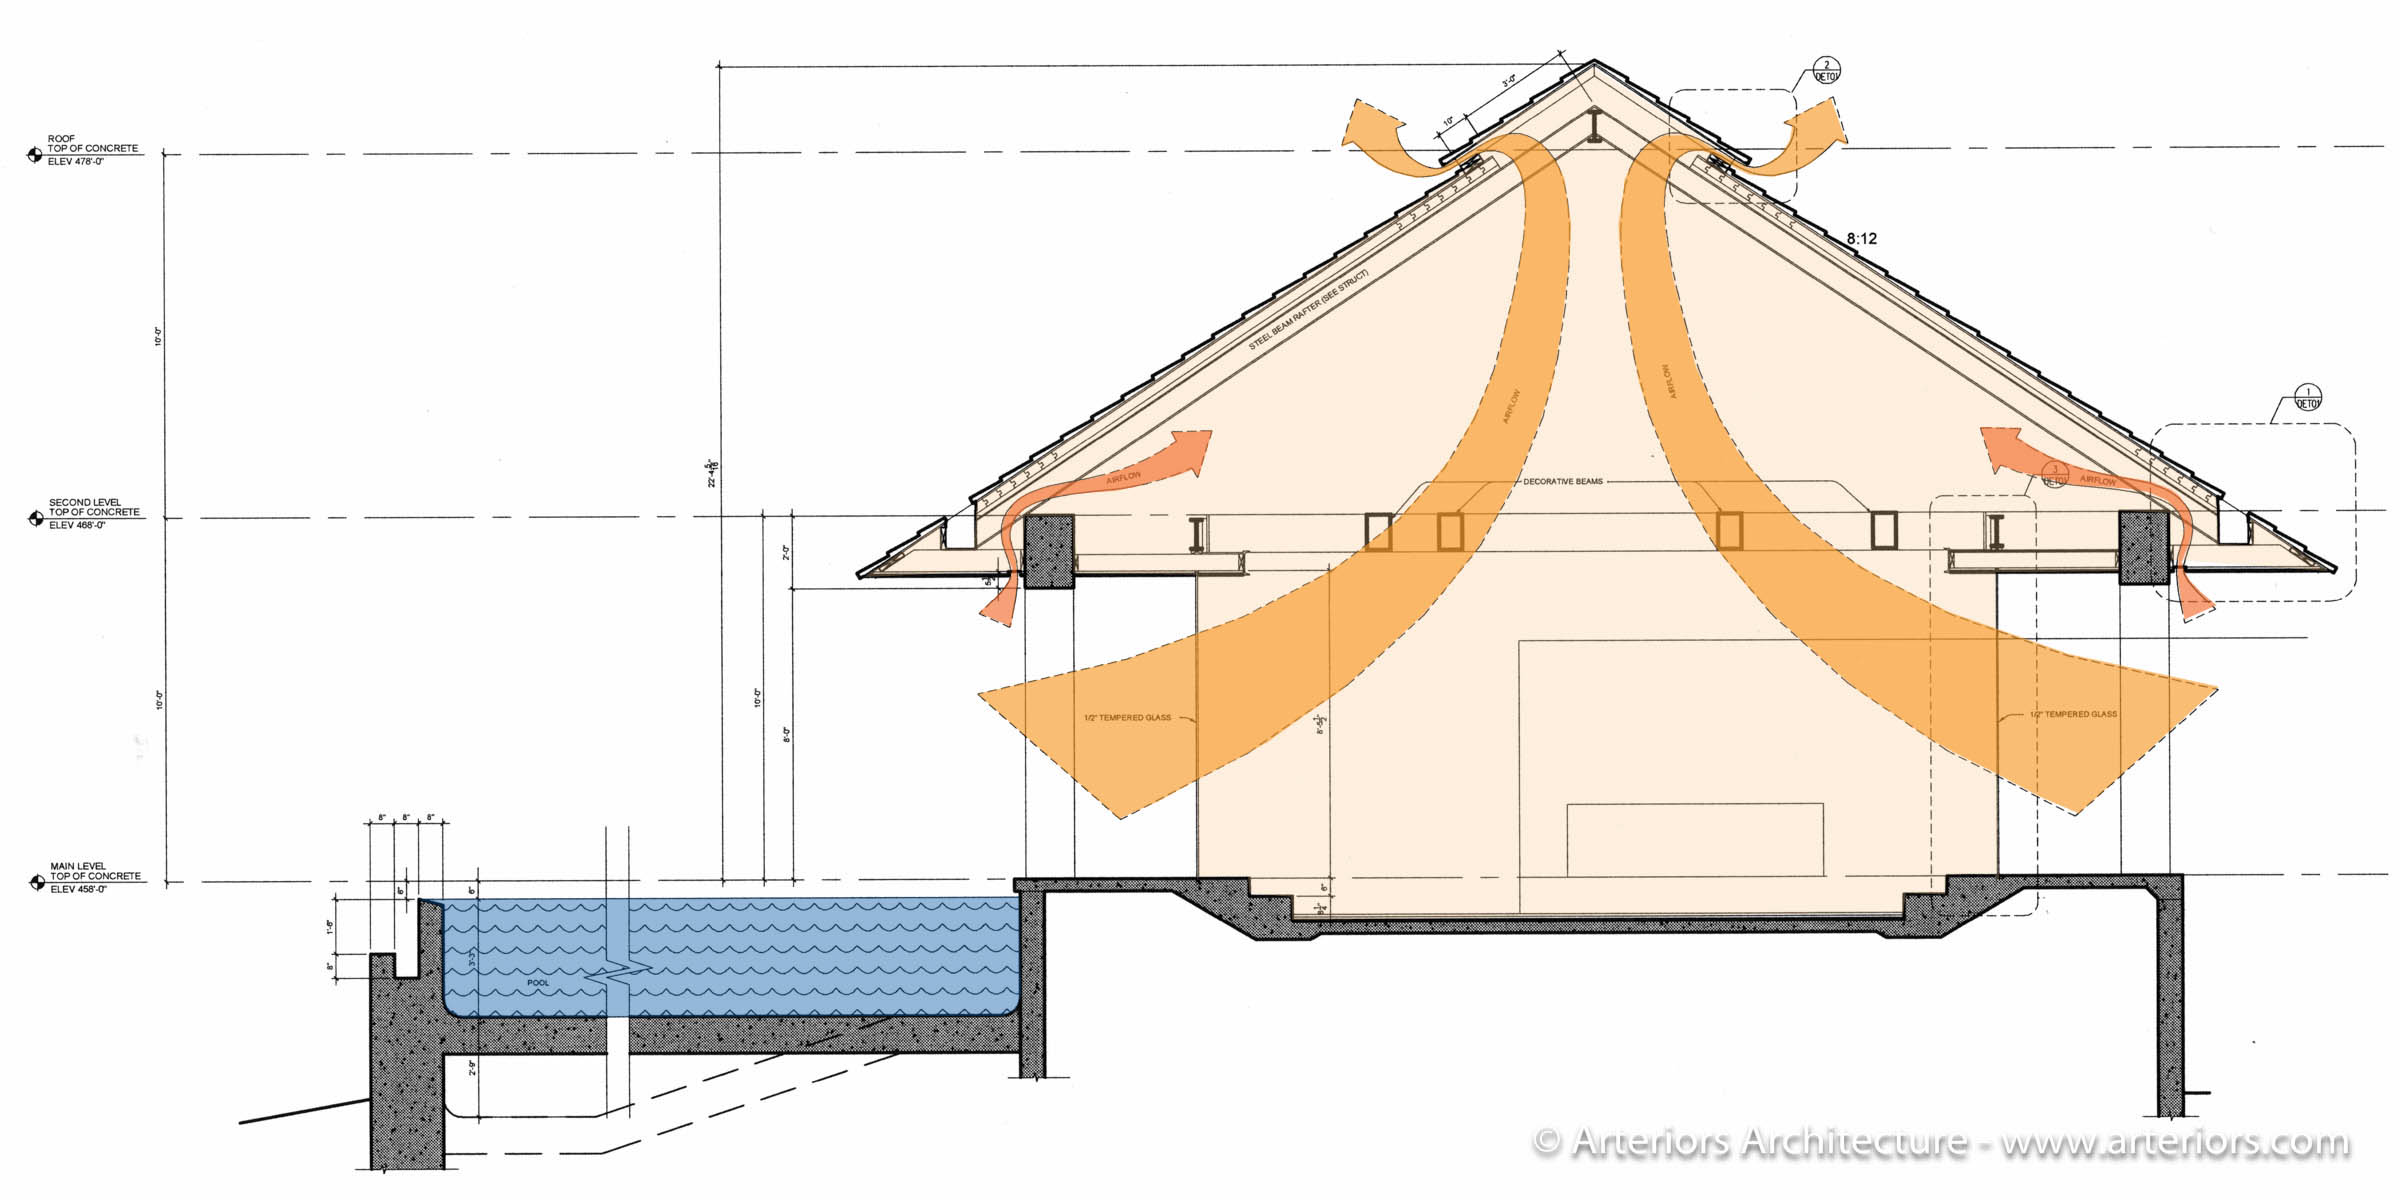 Natural Ventilation and Airflow